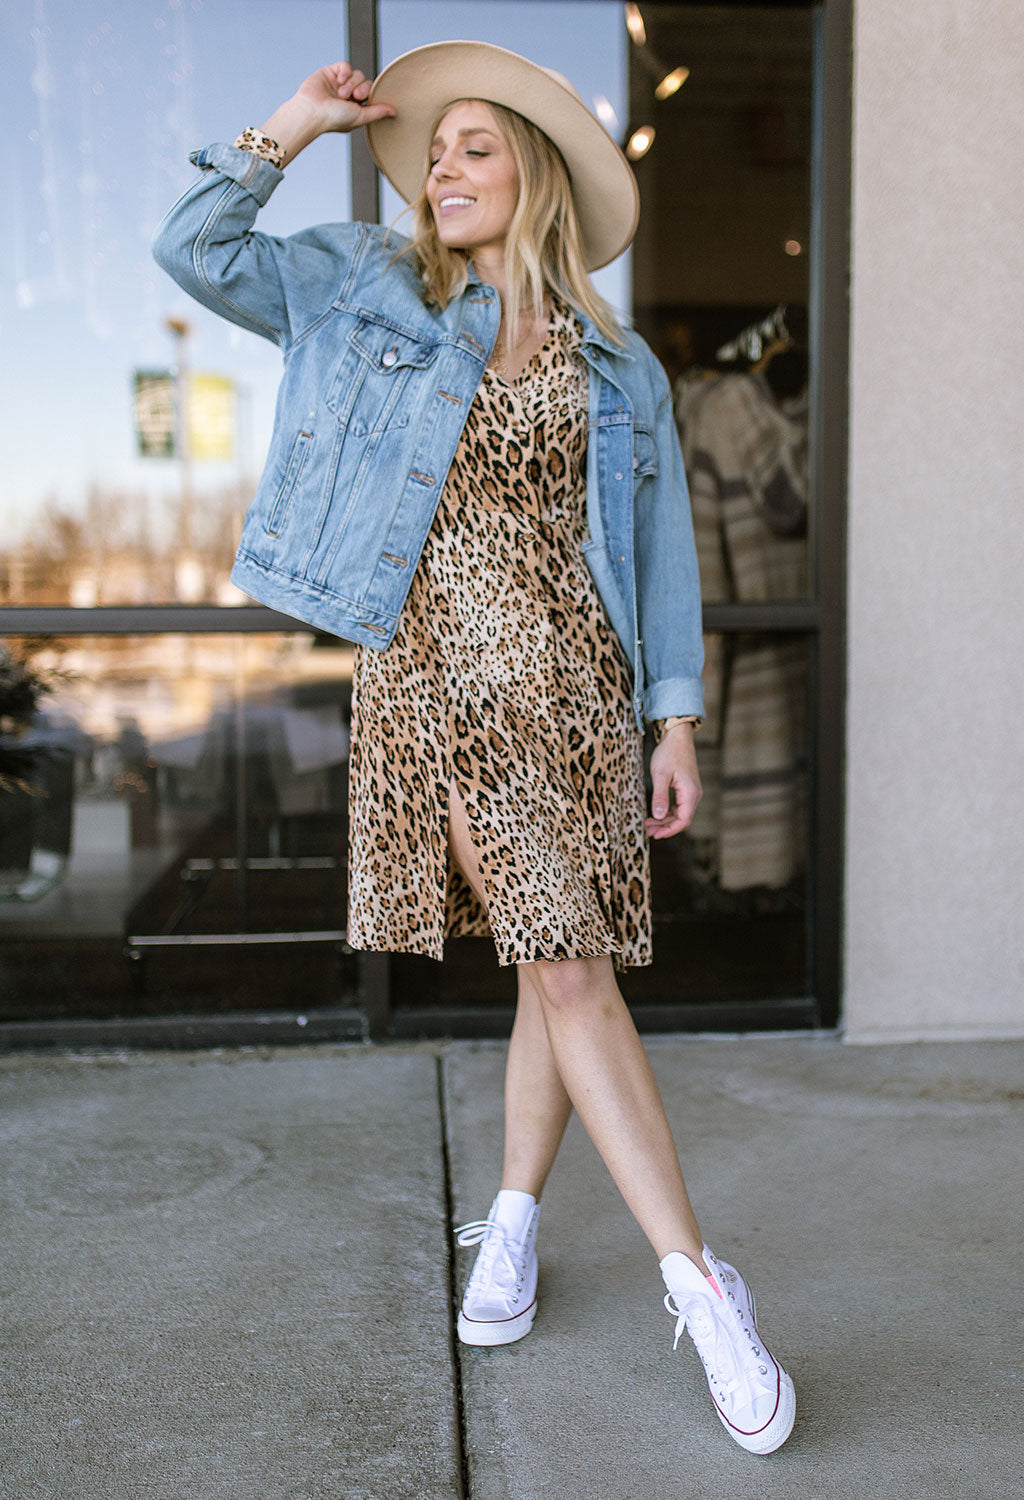 Frame Sgt Pepper Leopard Print Silk Dress